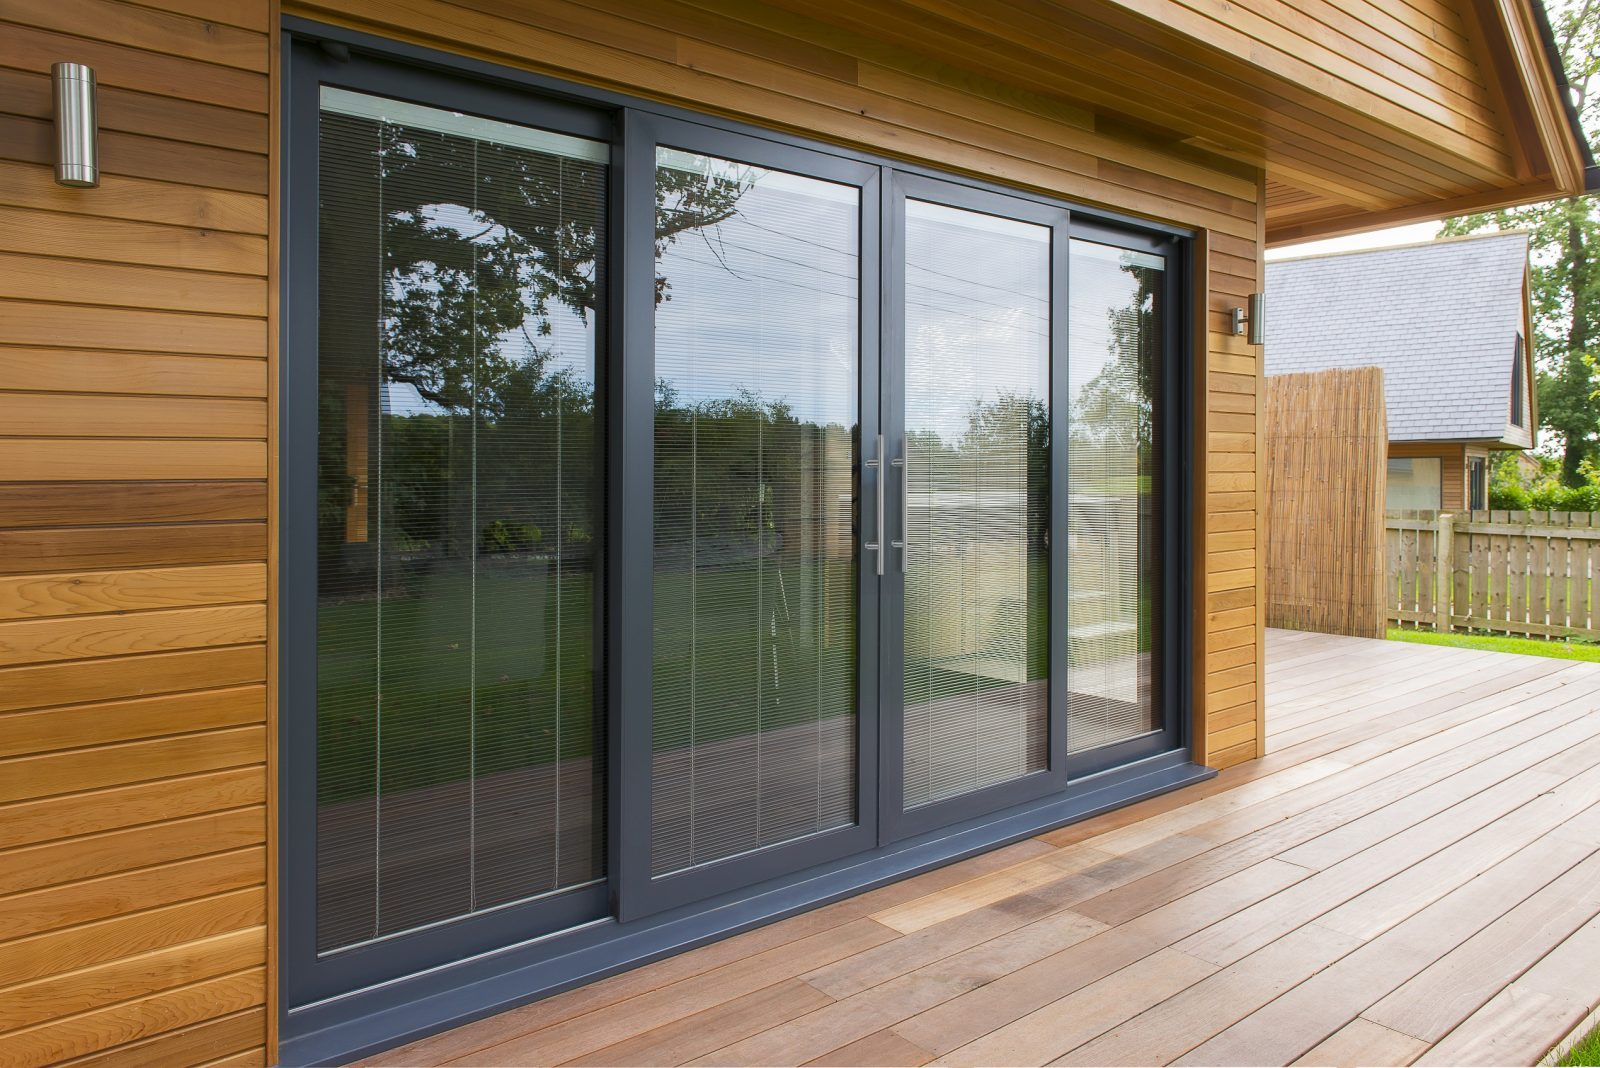 Aluminium sliding patio doors turkington windows for Patio doors folding sliding